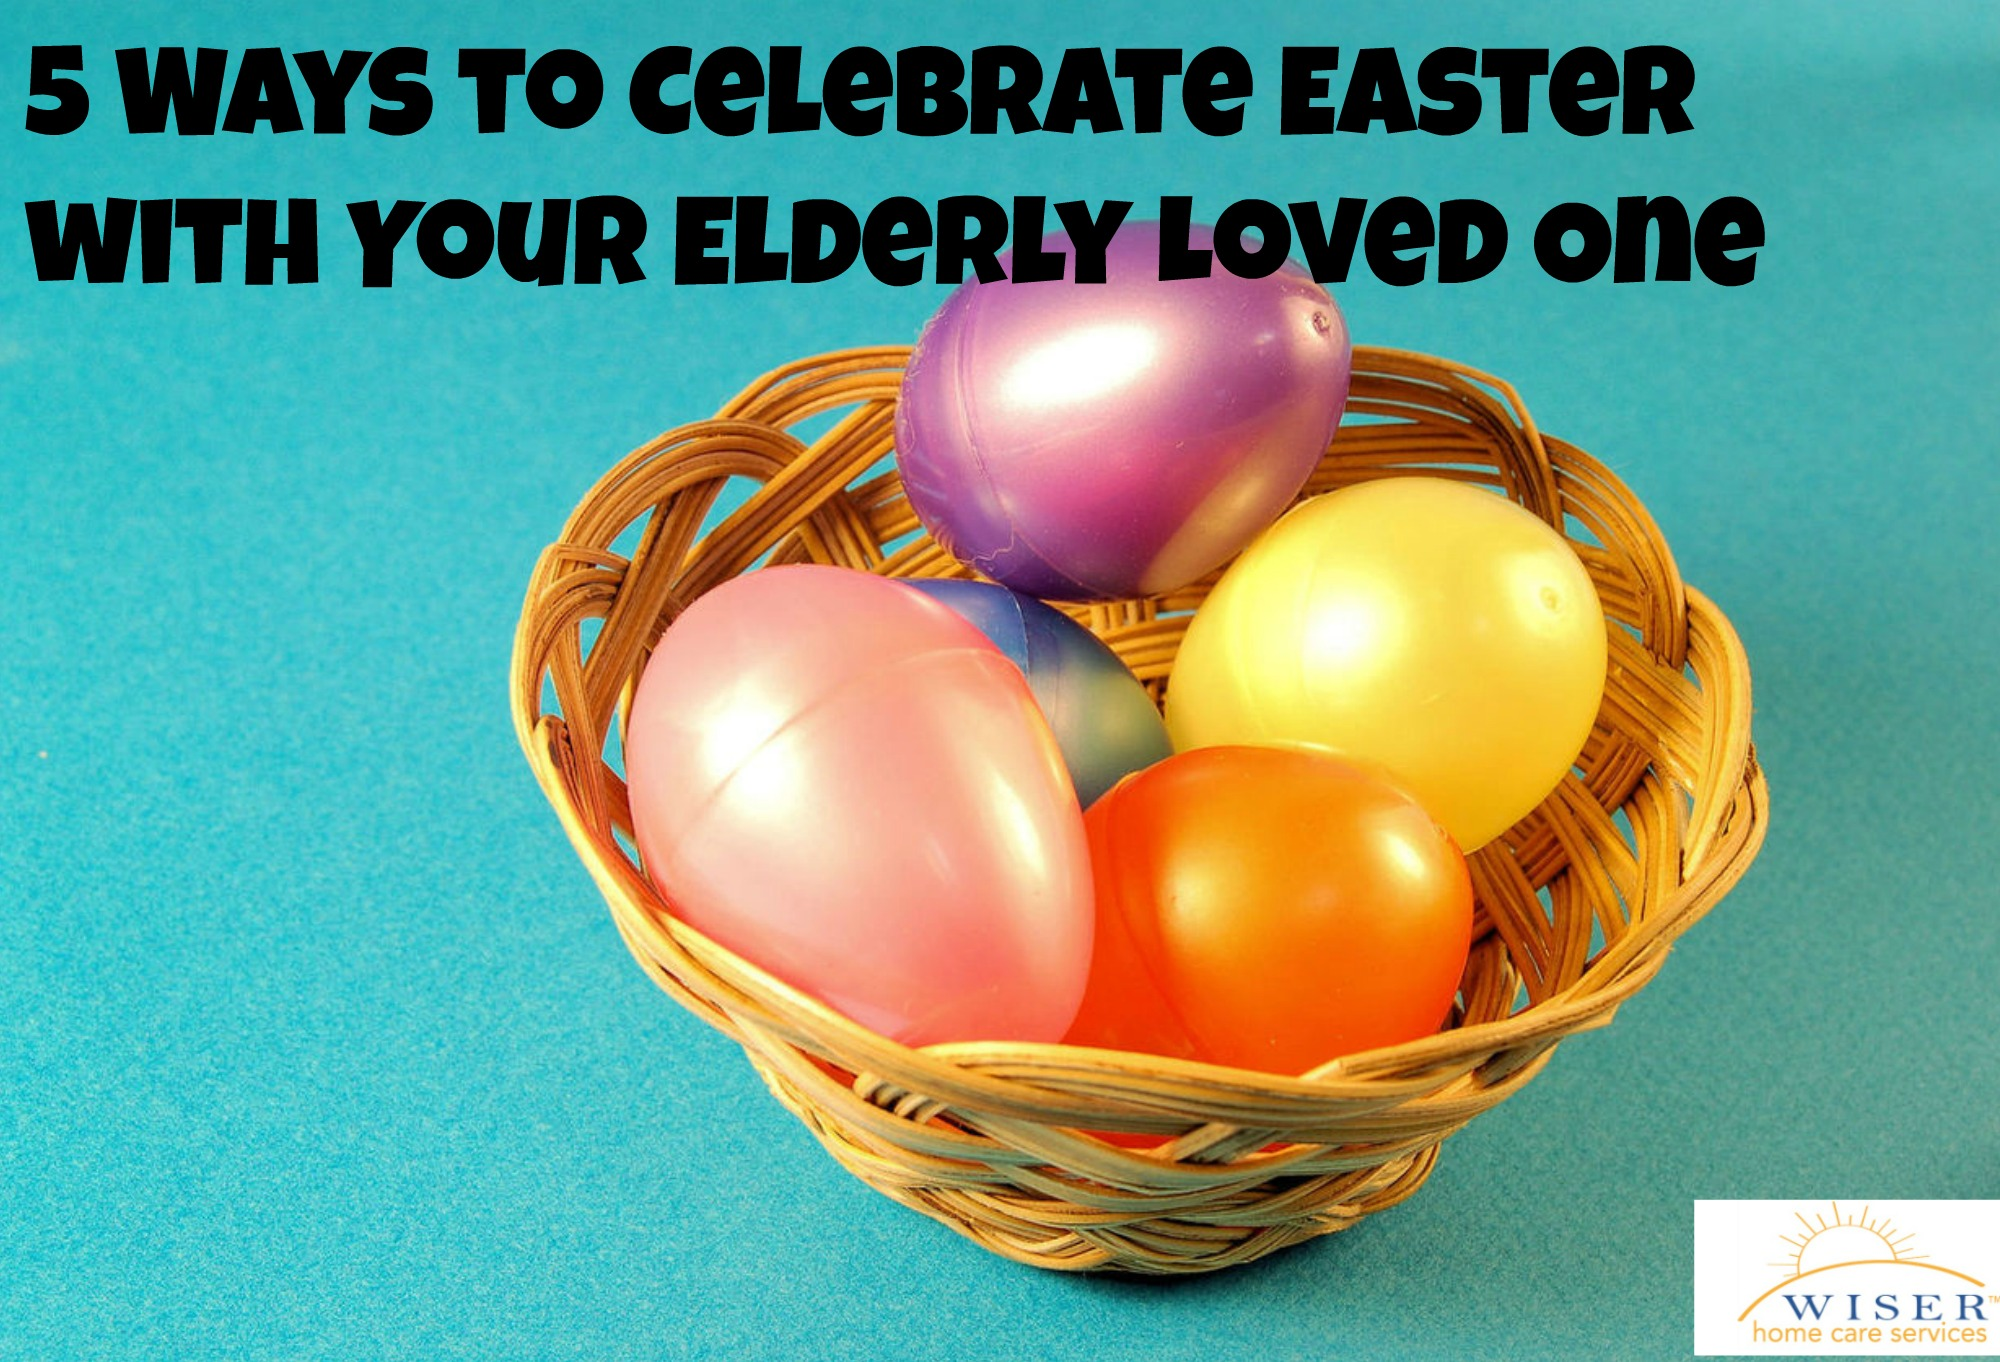 You're never too old to celebrate Easter with an Easter basket filled with candy. These 5 tips will ensure your elderly loved one has an Easter to remember.